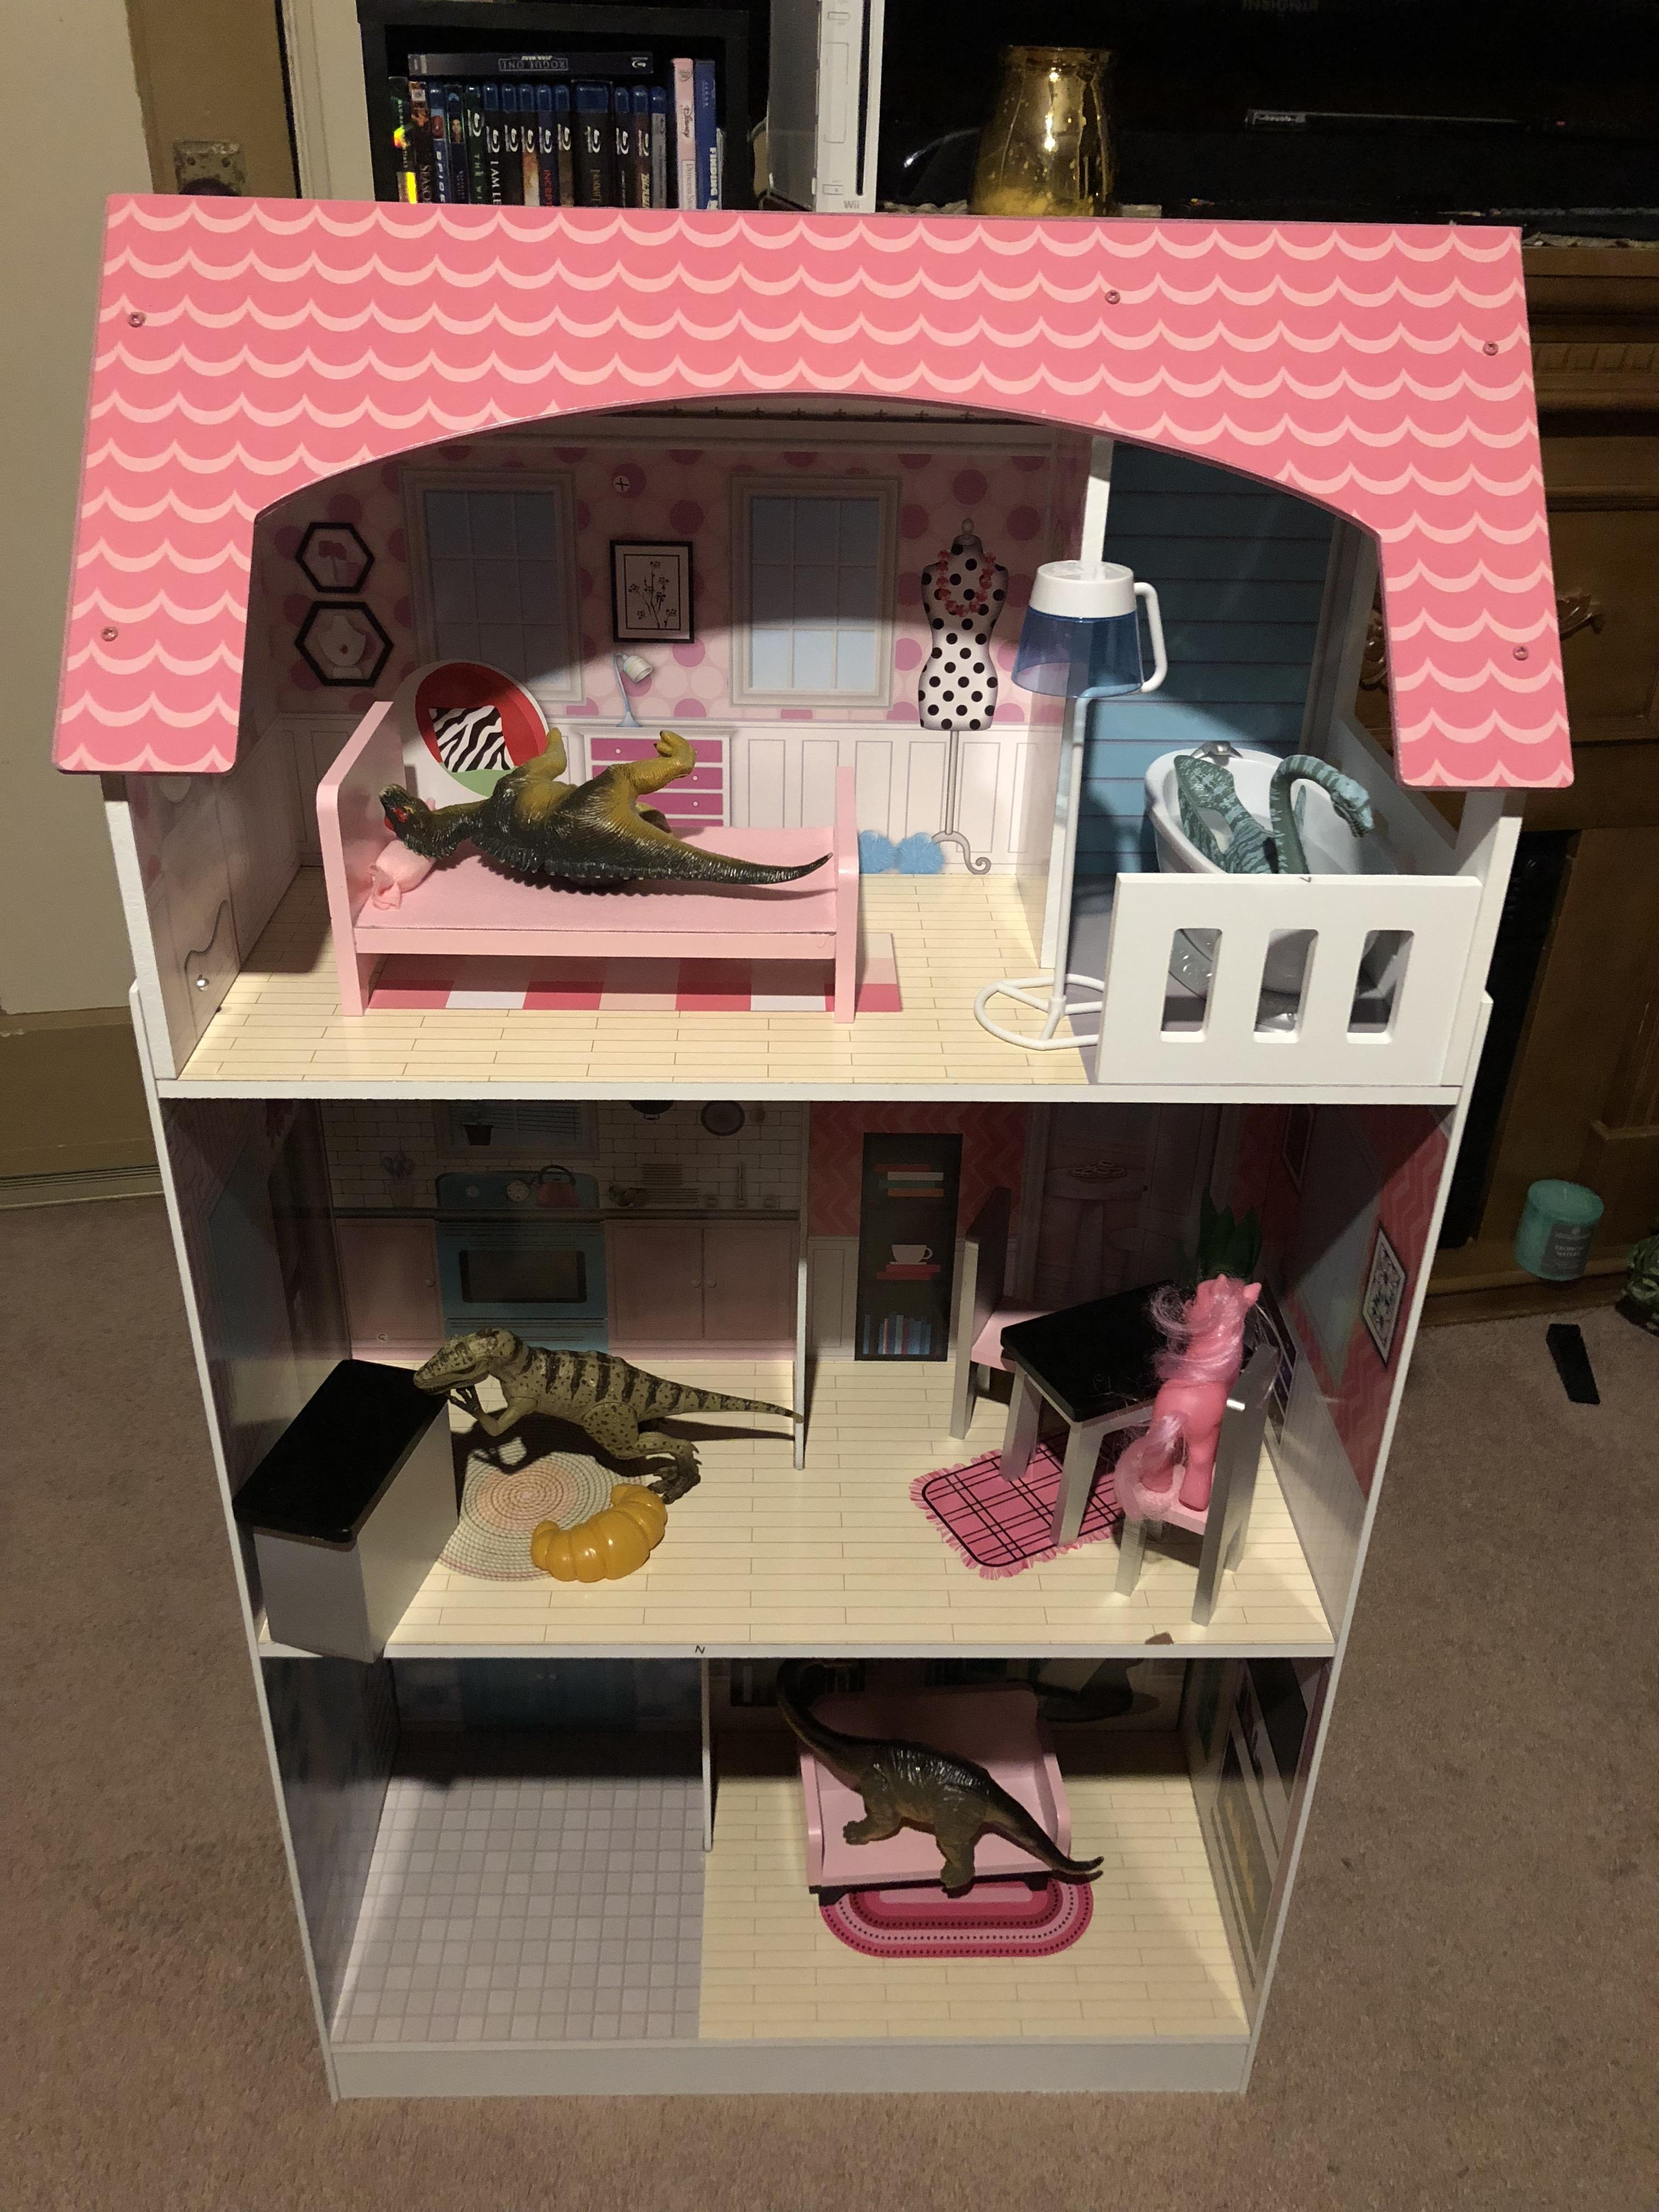 memes my 7 year old sister loves dinosaurs but my parents got her a dollhouse for